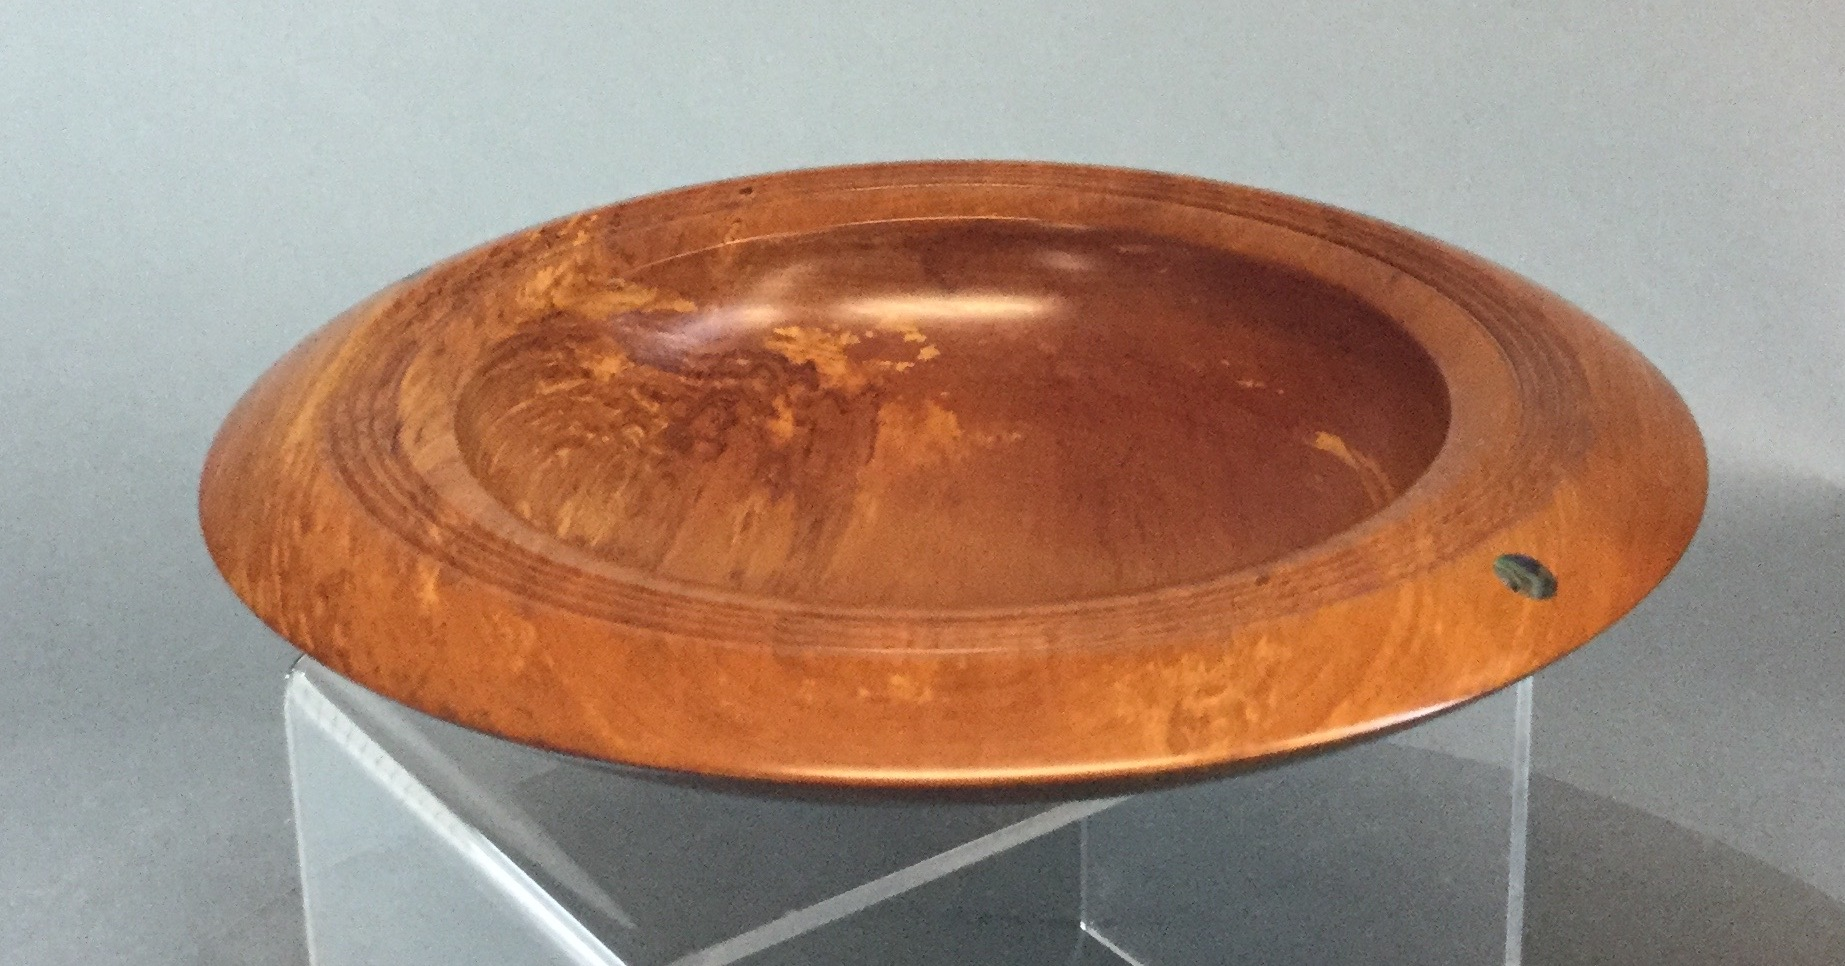 Turned-Wood-Bowl-from-New-Zealand_60843D.jpg